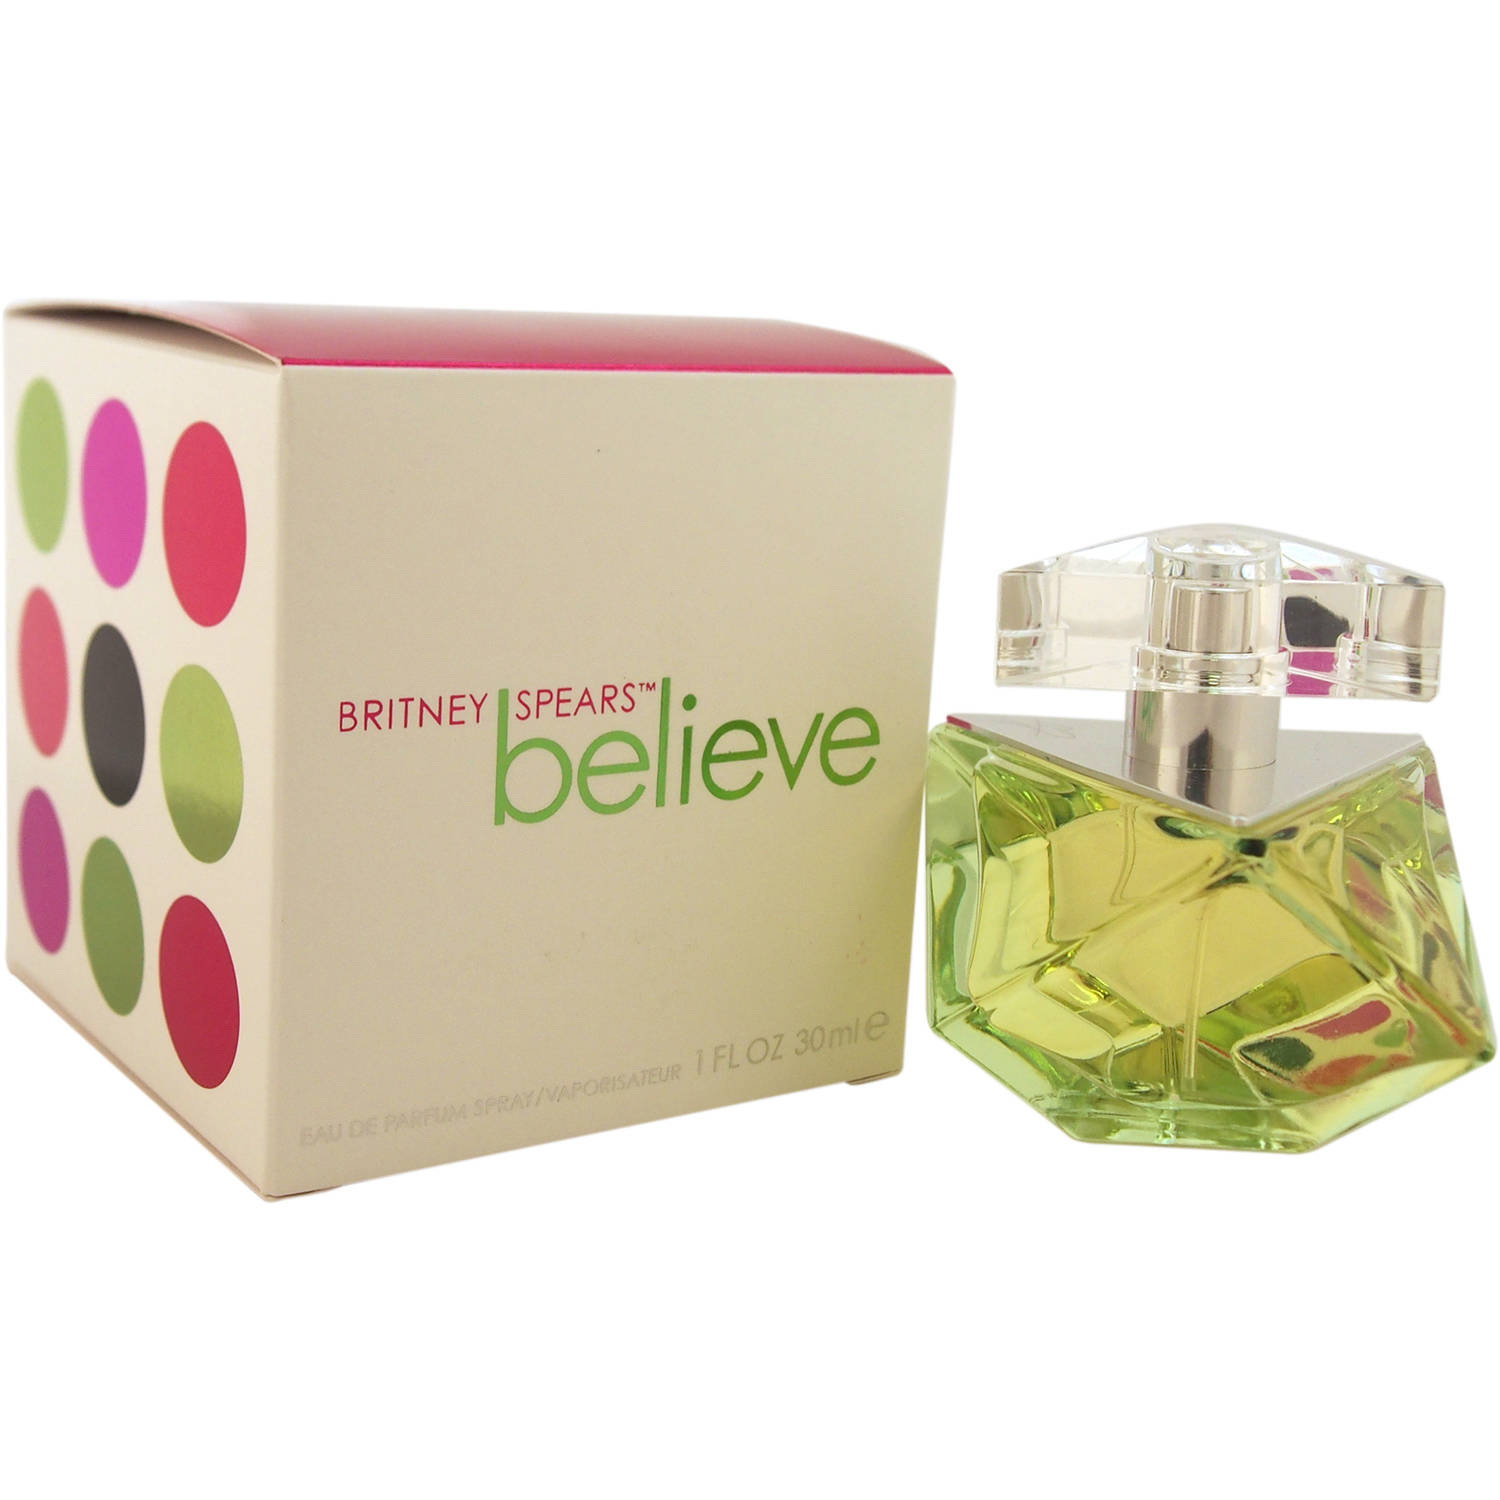 Britney Spears Believe EDP Spray, 1 fl oz